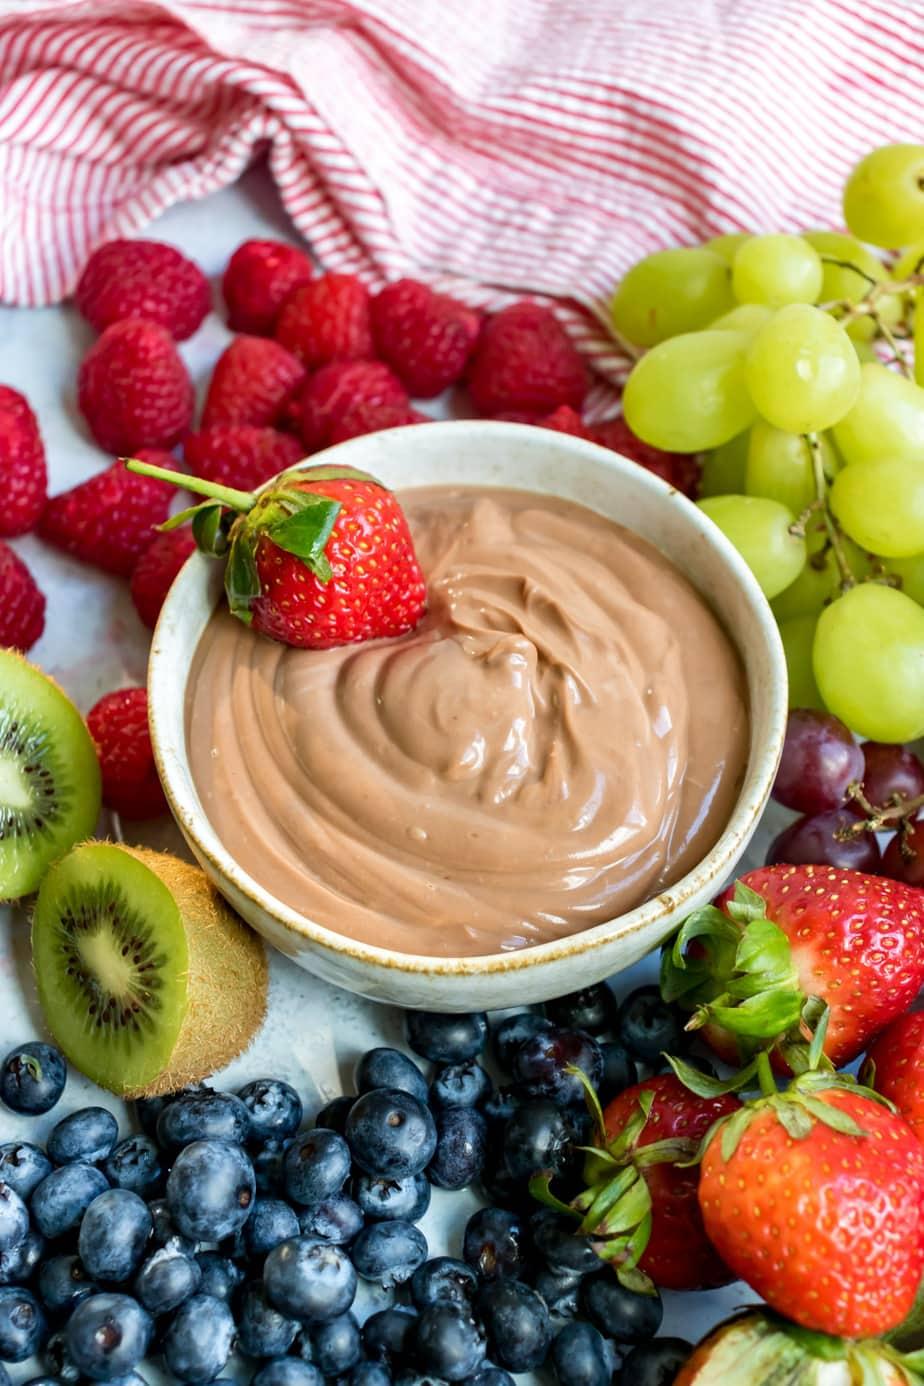 Bowl of nutella dip with a strawberry in it surrounded by fruit.